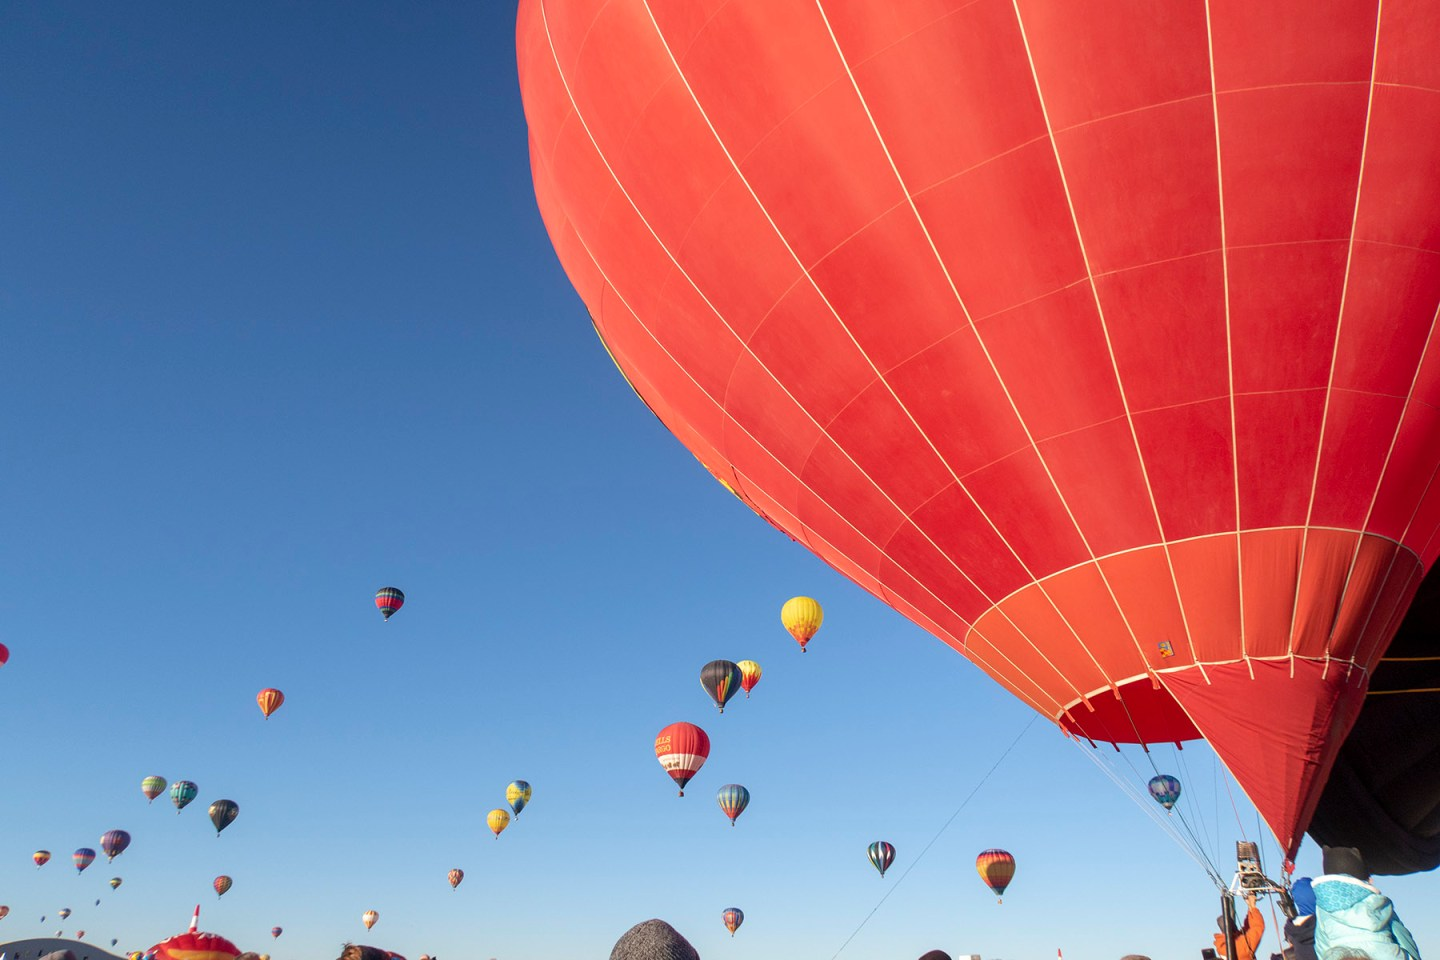 Mass Ascension of hot air balloons in Albuquerque New Mexico